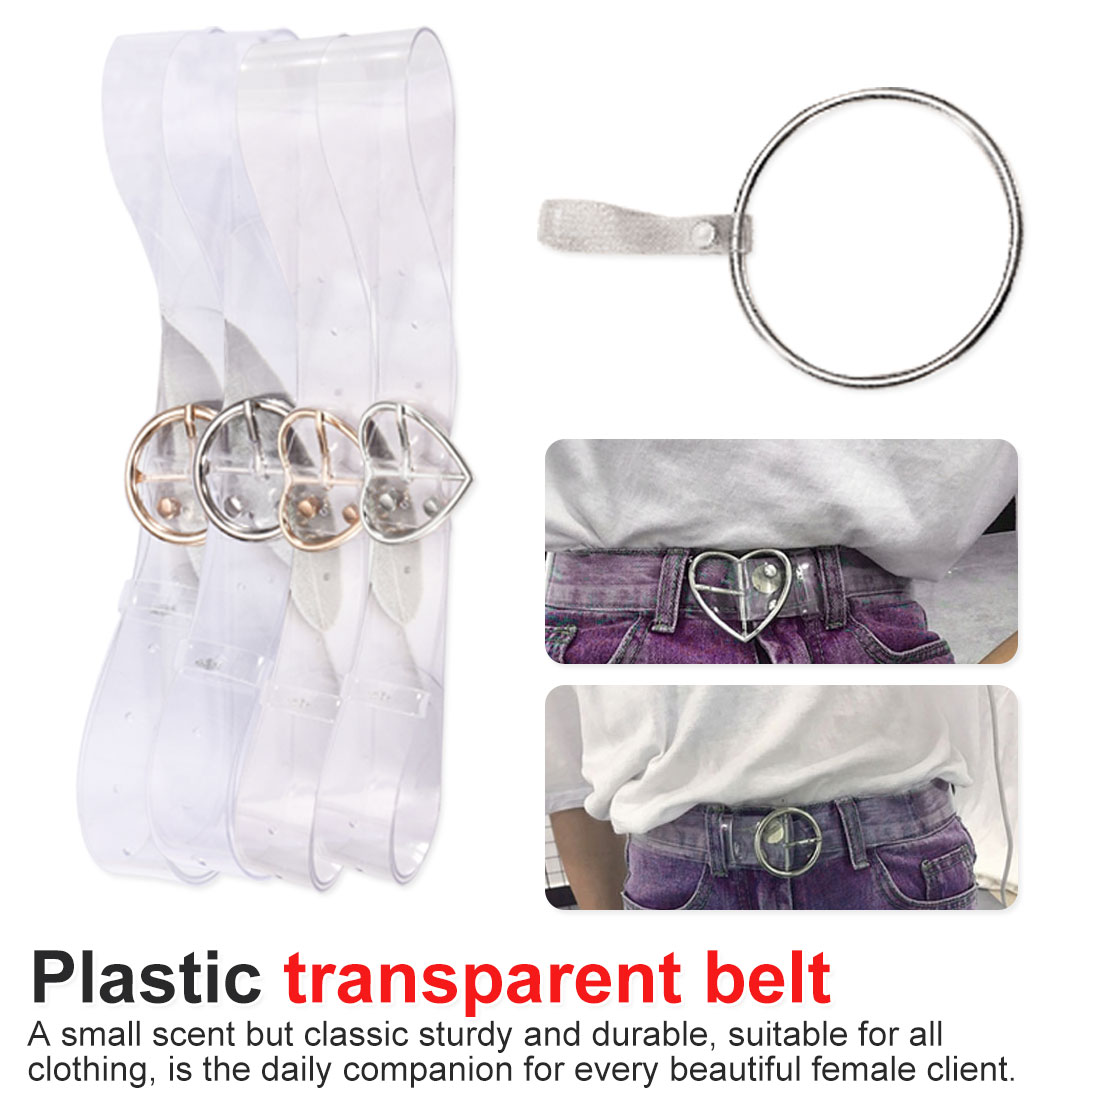 PVC Clear Belt Heart Belts For Women Resin Cute Transparent Belt Waist Strap Pin Buckle Harajuku Ladies Round Jeans Dress